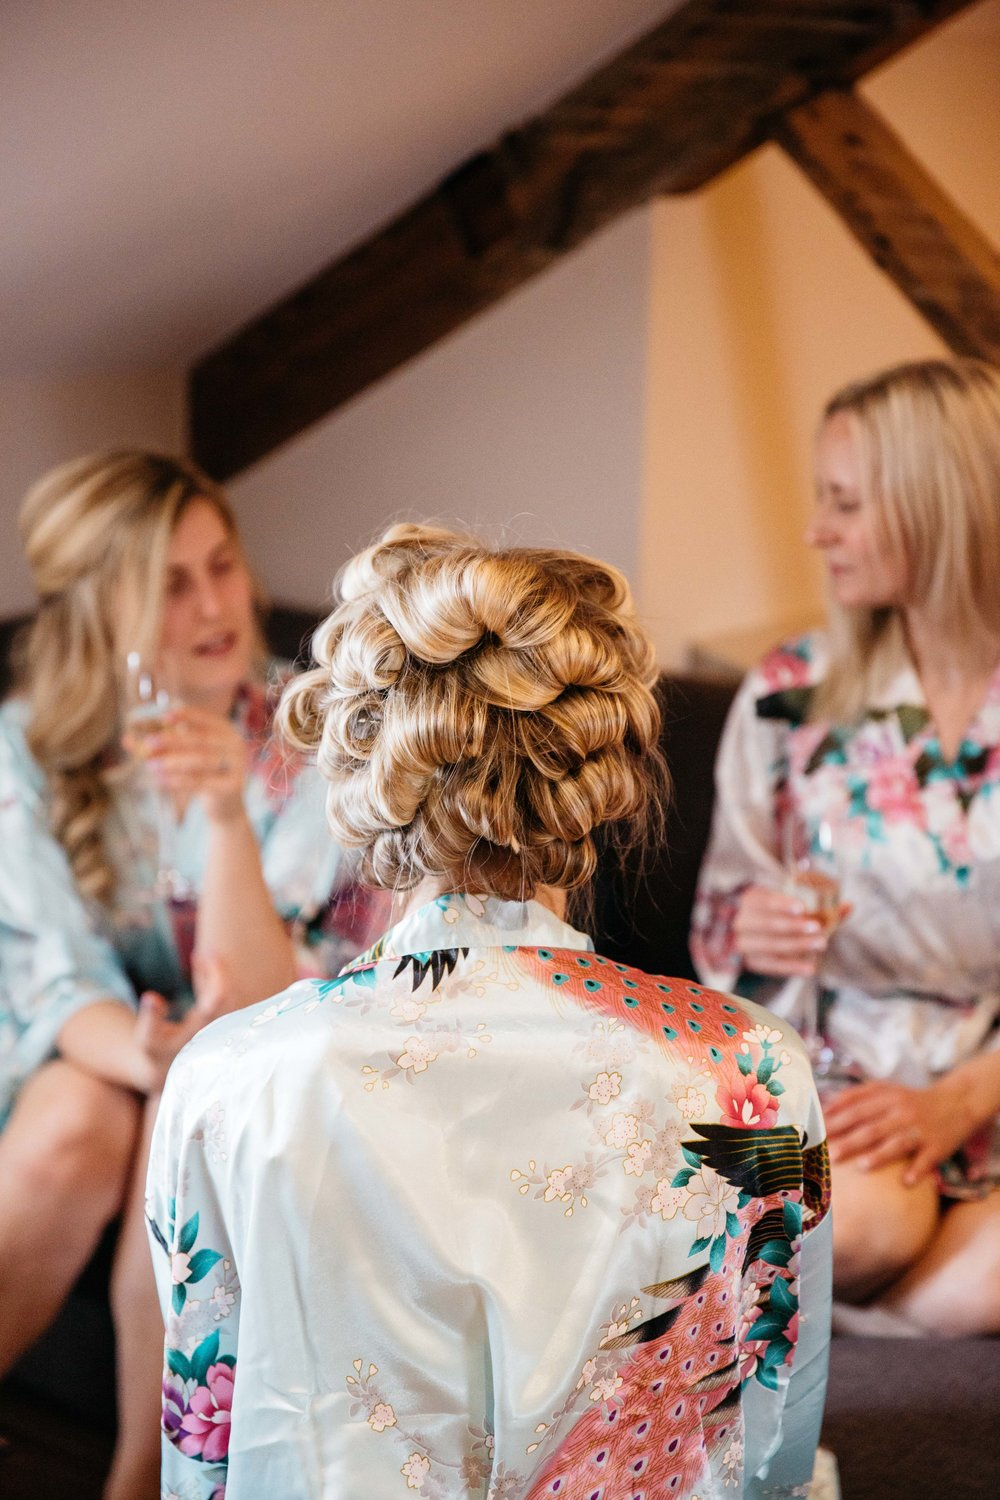 Bridesmaid Hair and makeup getting ready at Hotel Du Vin Harrogate